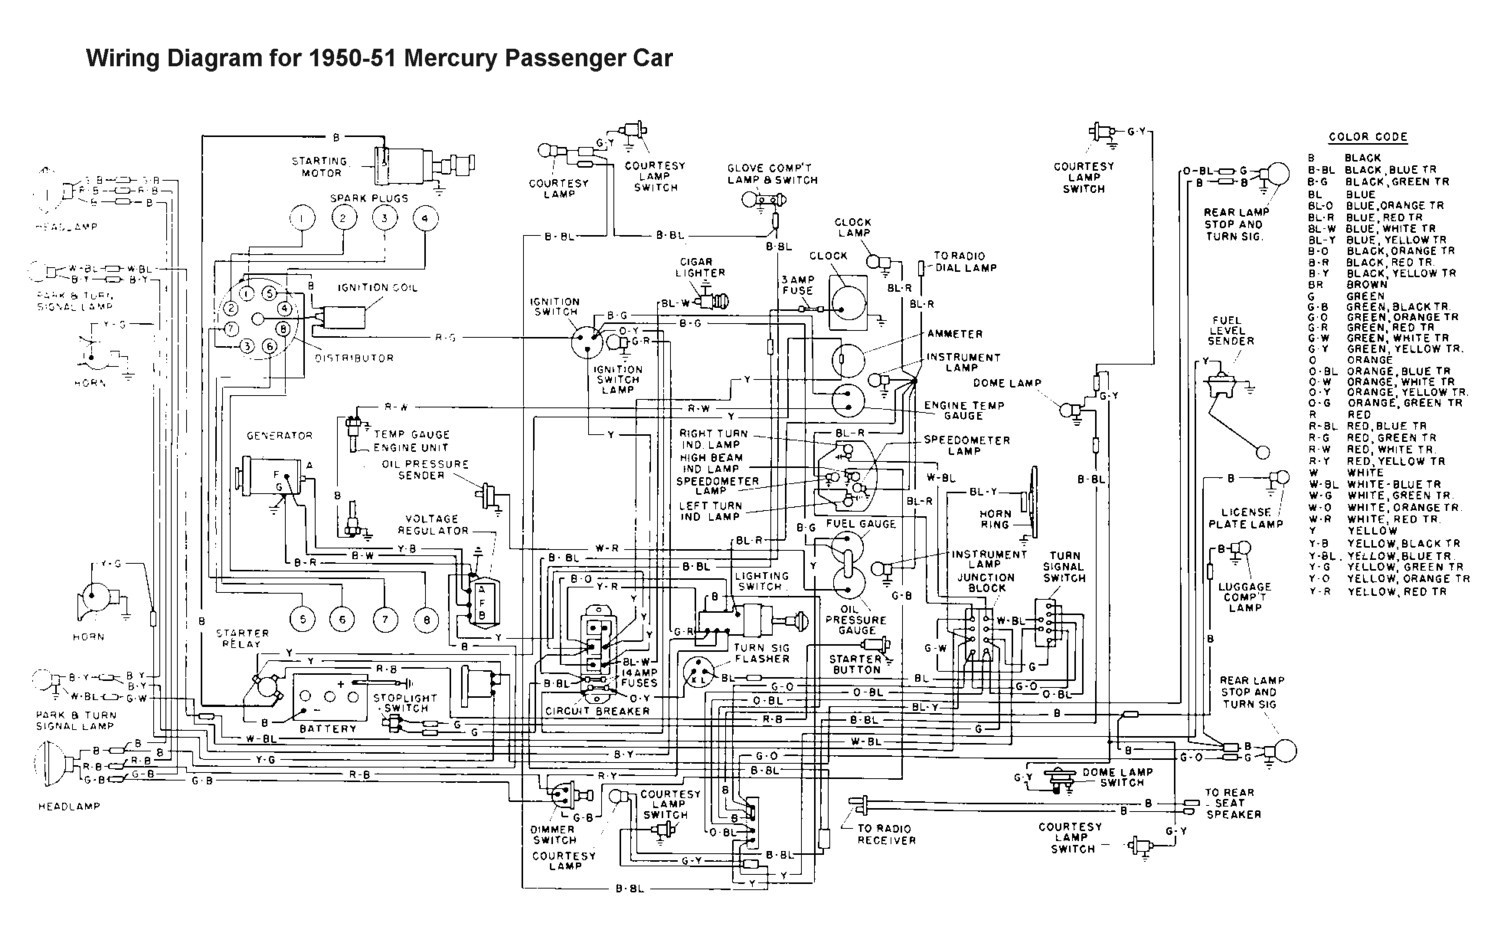 Flathead electrical wiring diagrams wiring for 1950 51 mercury car pooptronica